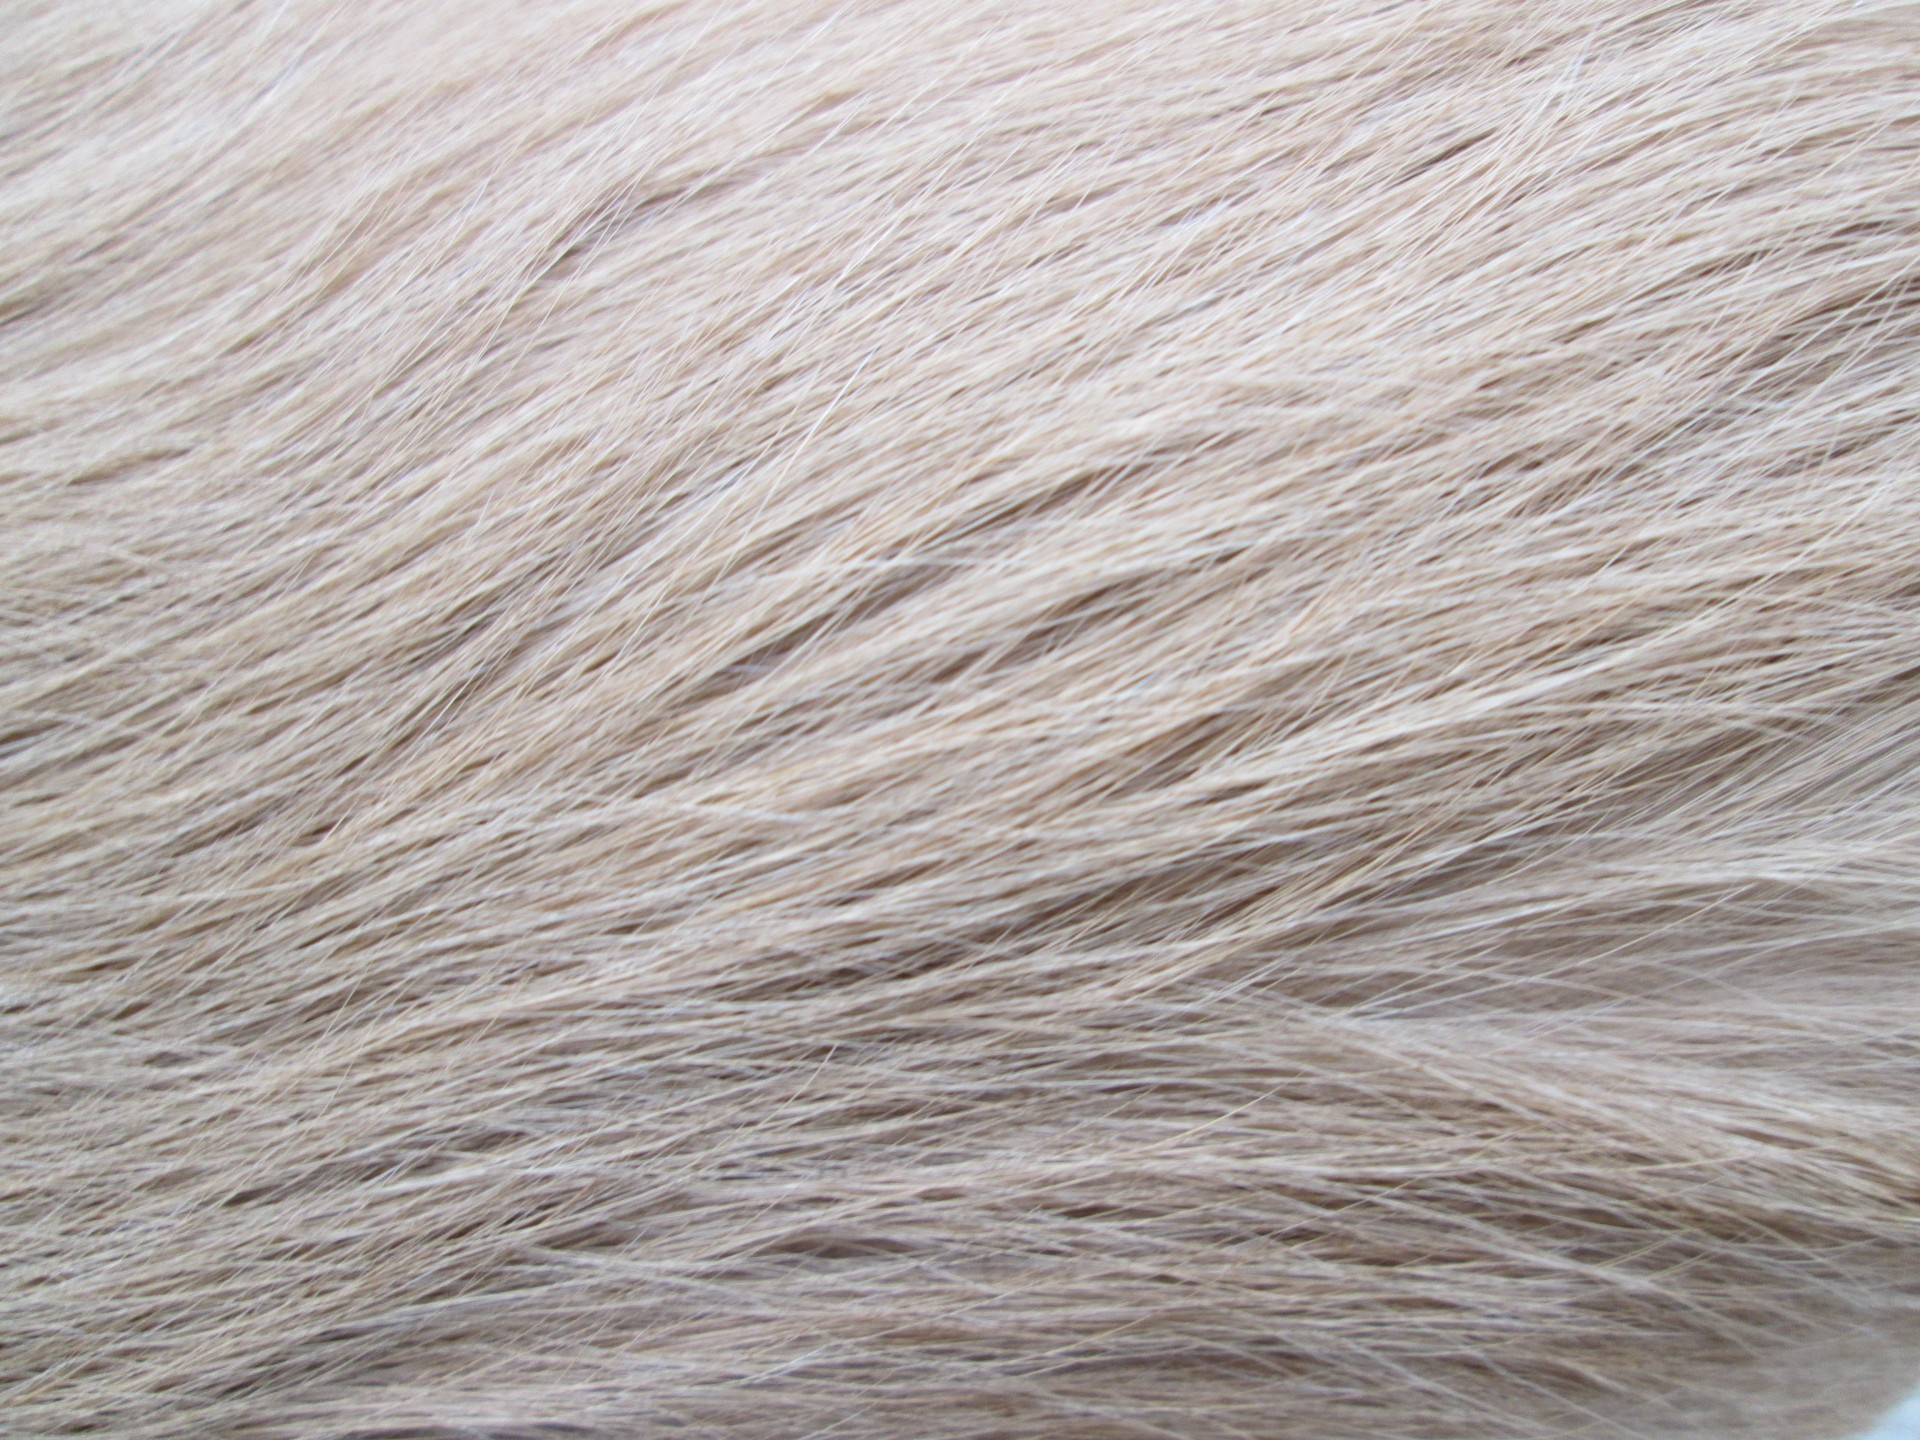 Free Animal Wallpaper Backgrounds Dog Fur Texture Free Stock Photo Public Domain Pictures